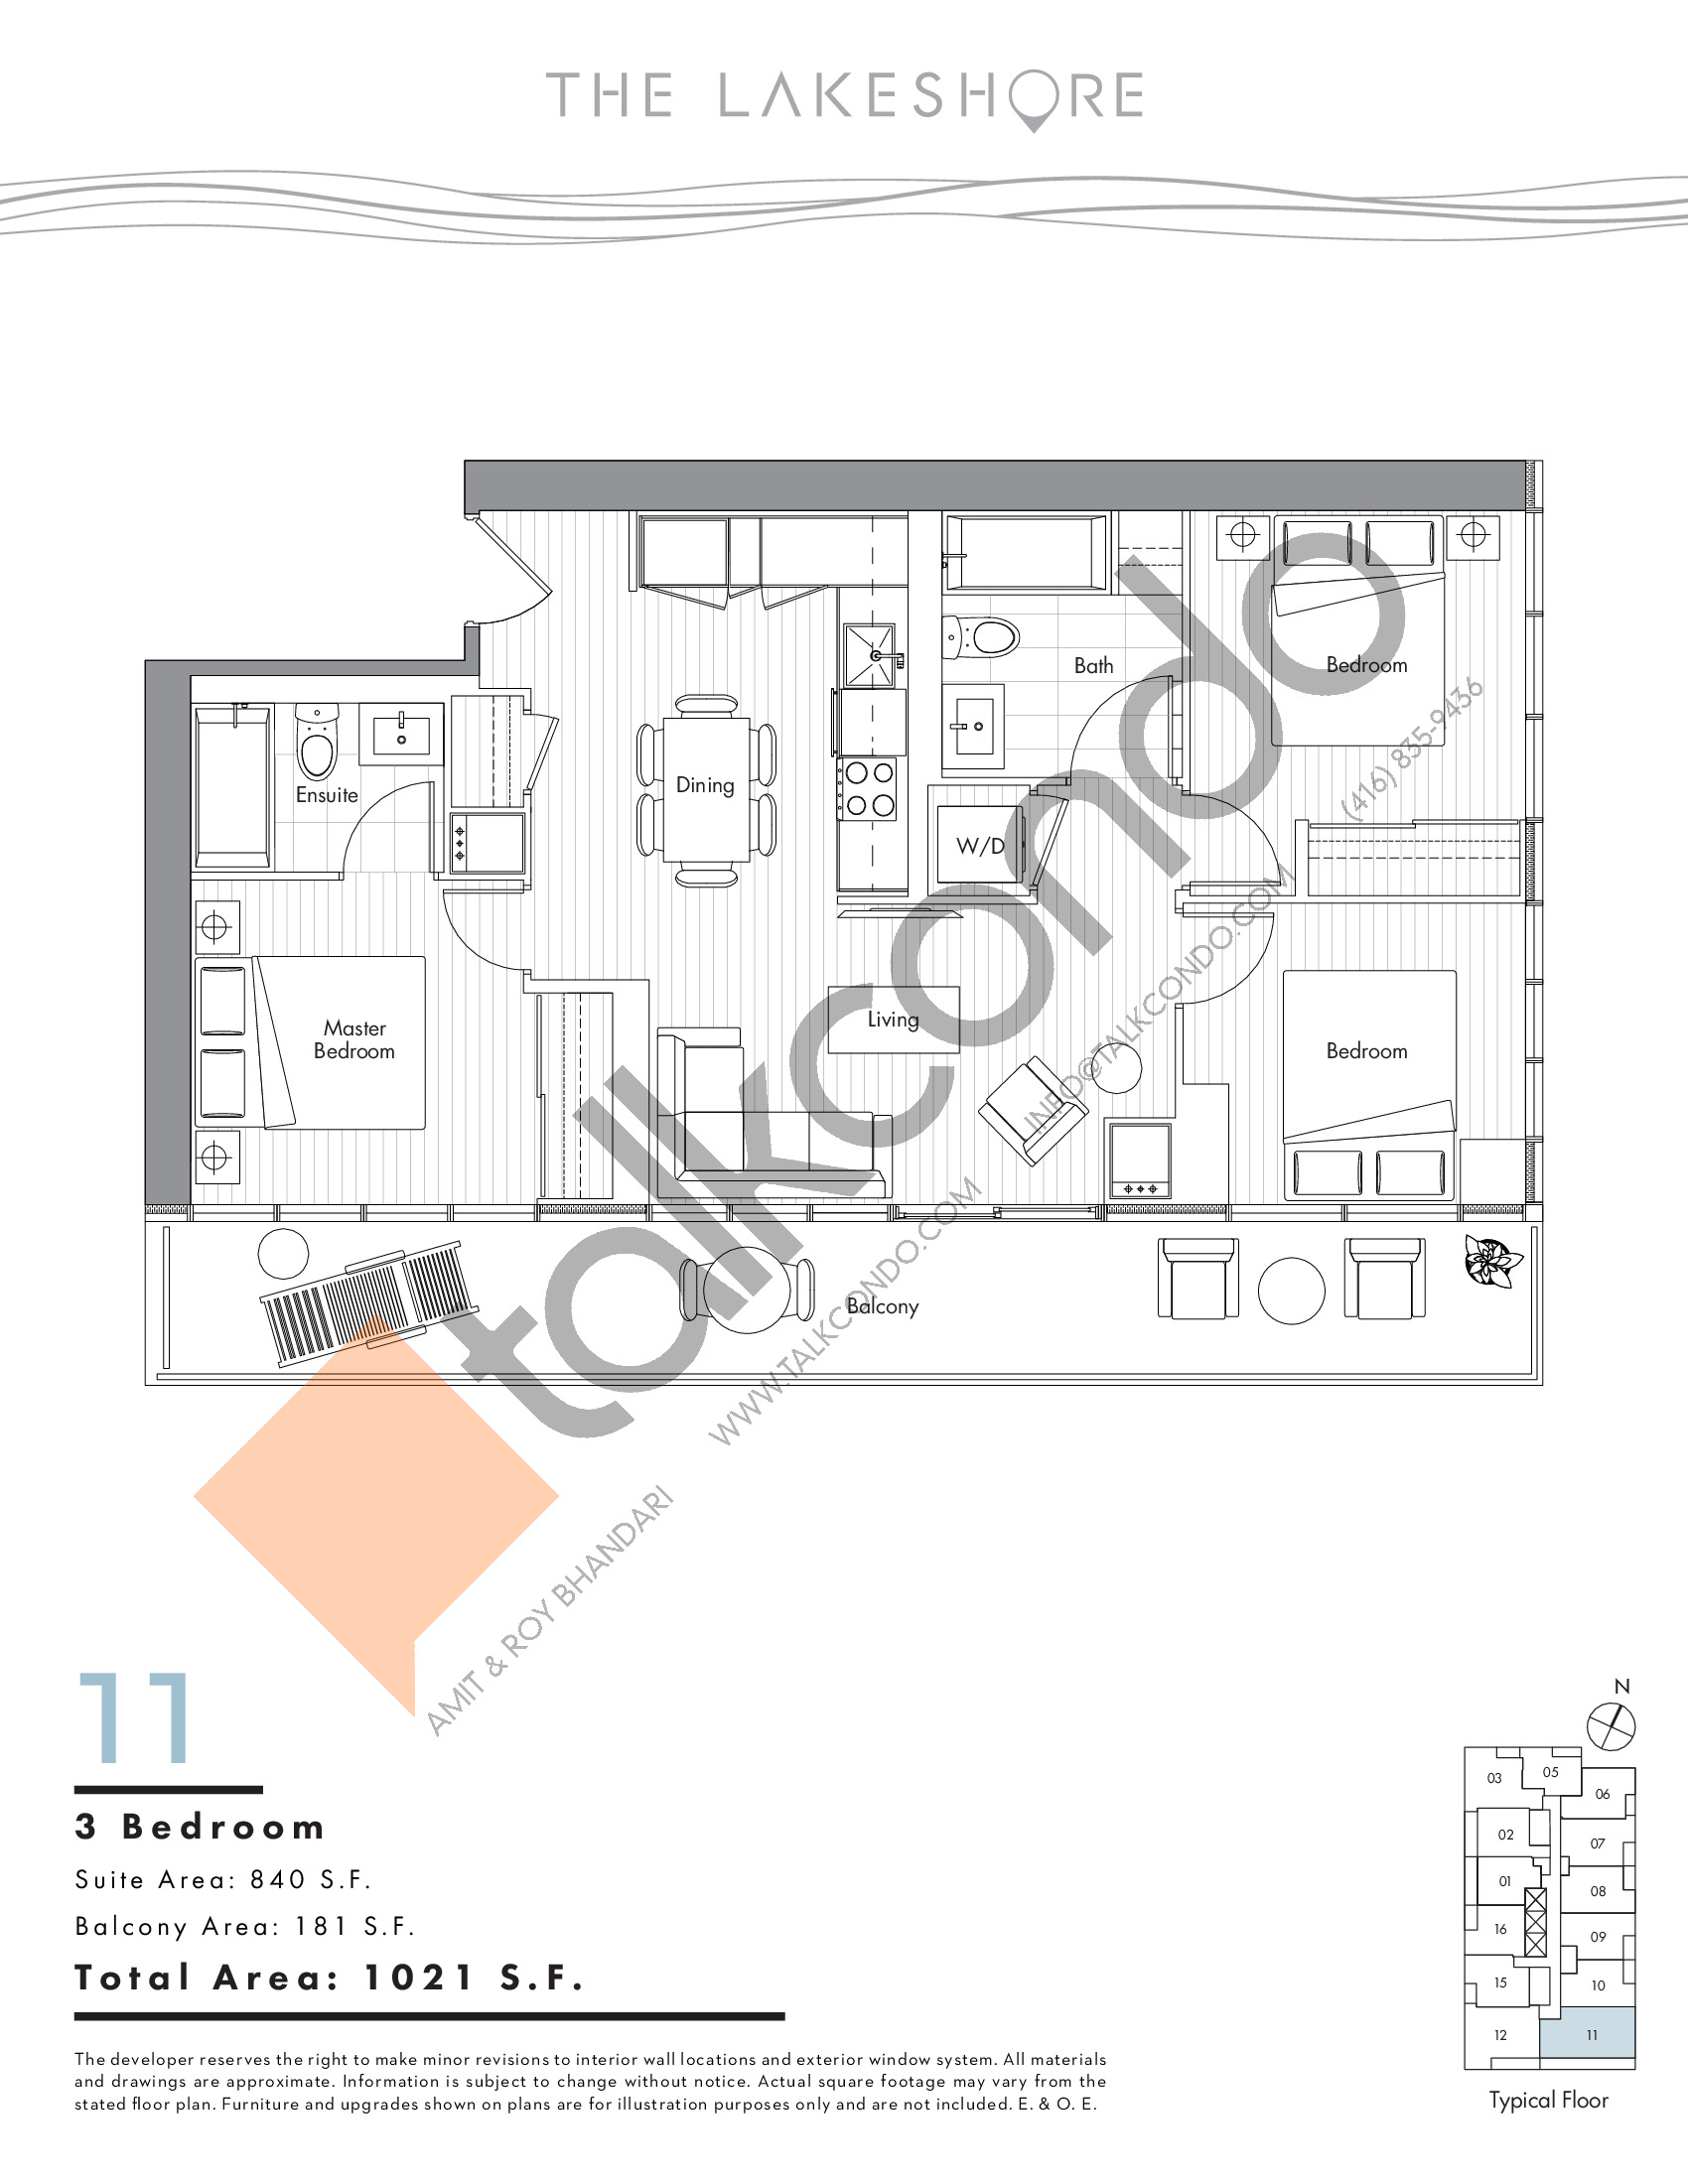 11 Floor Plan at The LakeShore Condos - 840 sq.ft